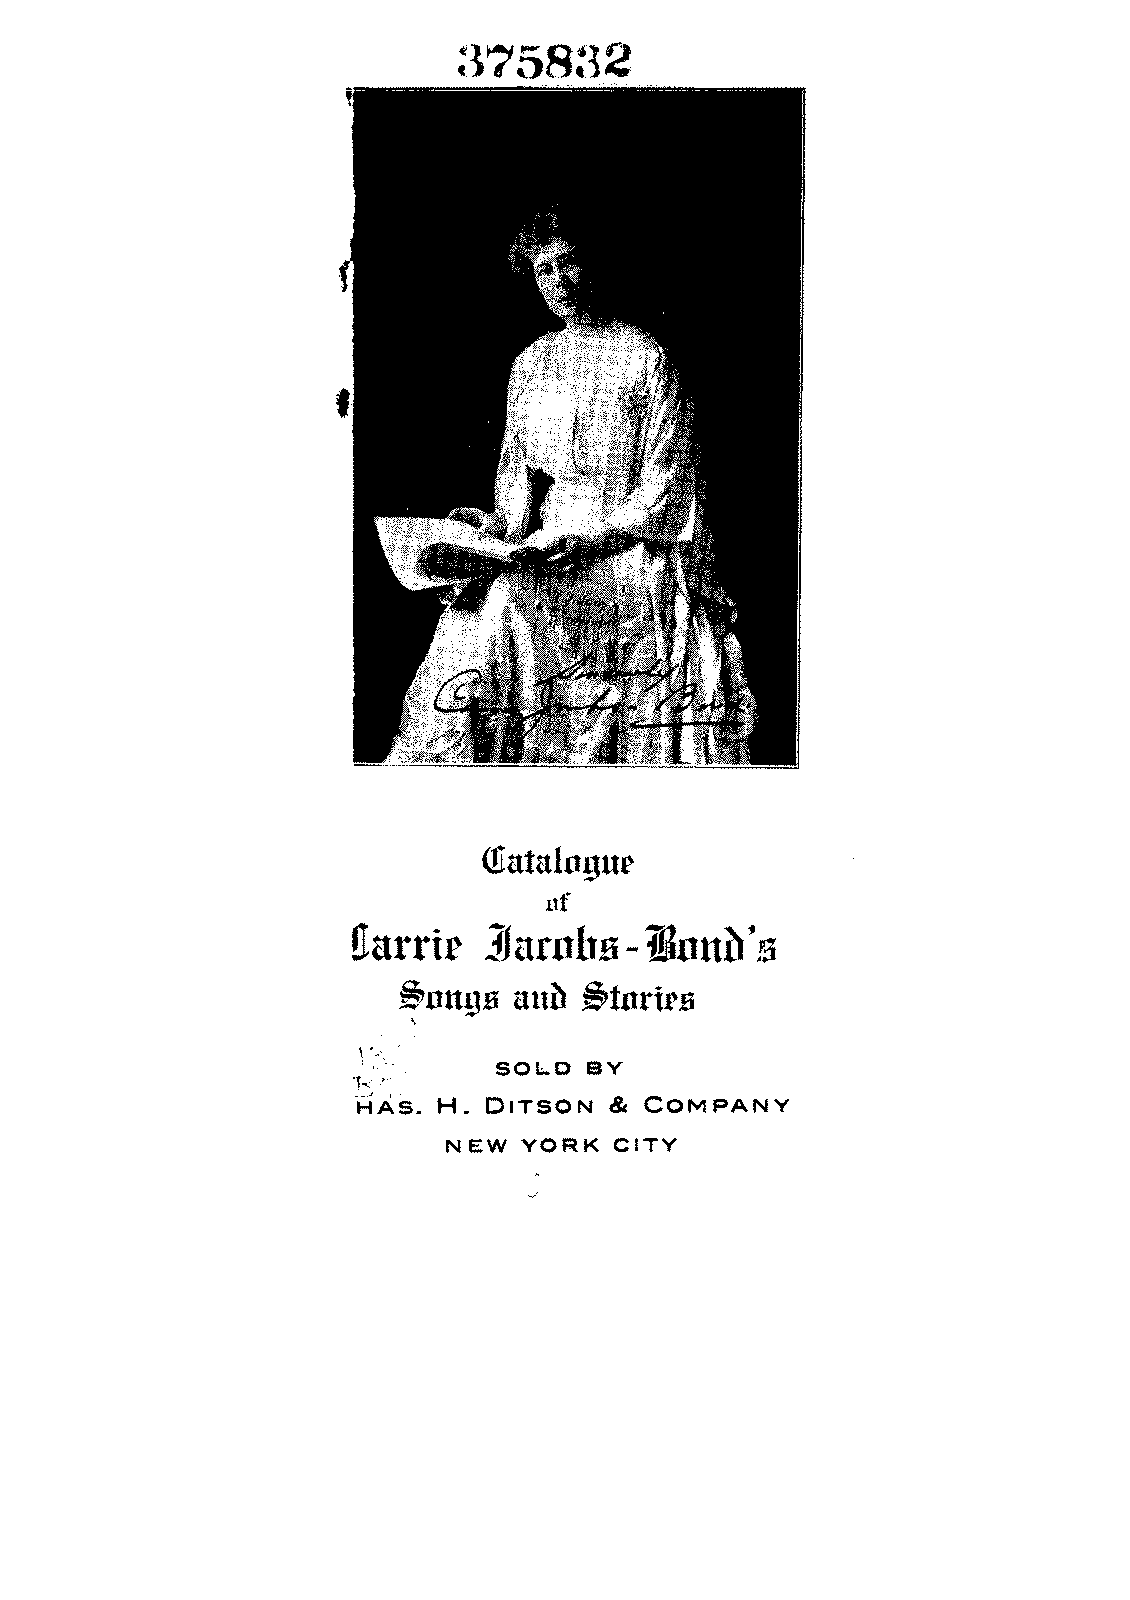 Catalog of Songs and Stories (Jacobs-Bond, Carrie) - IMSLP